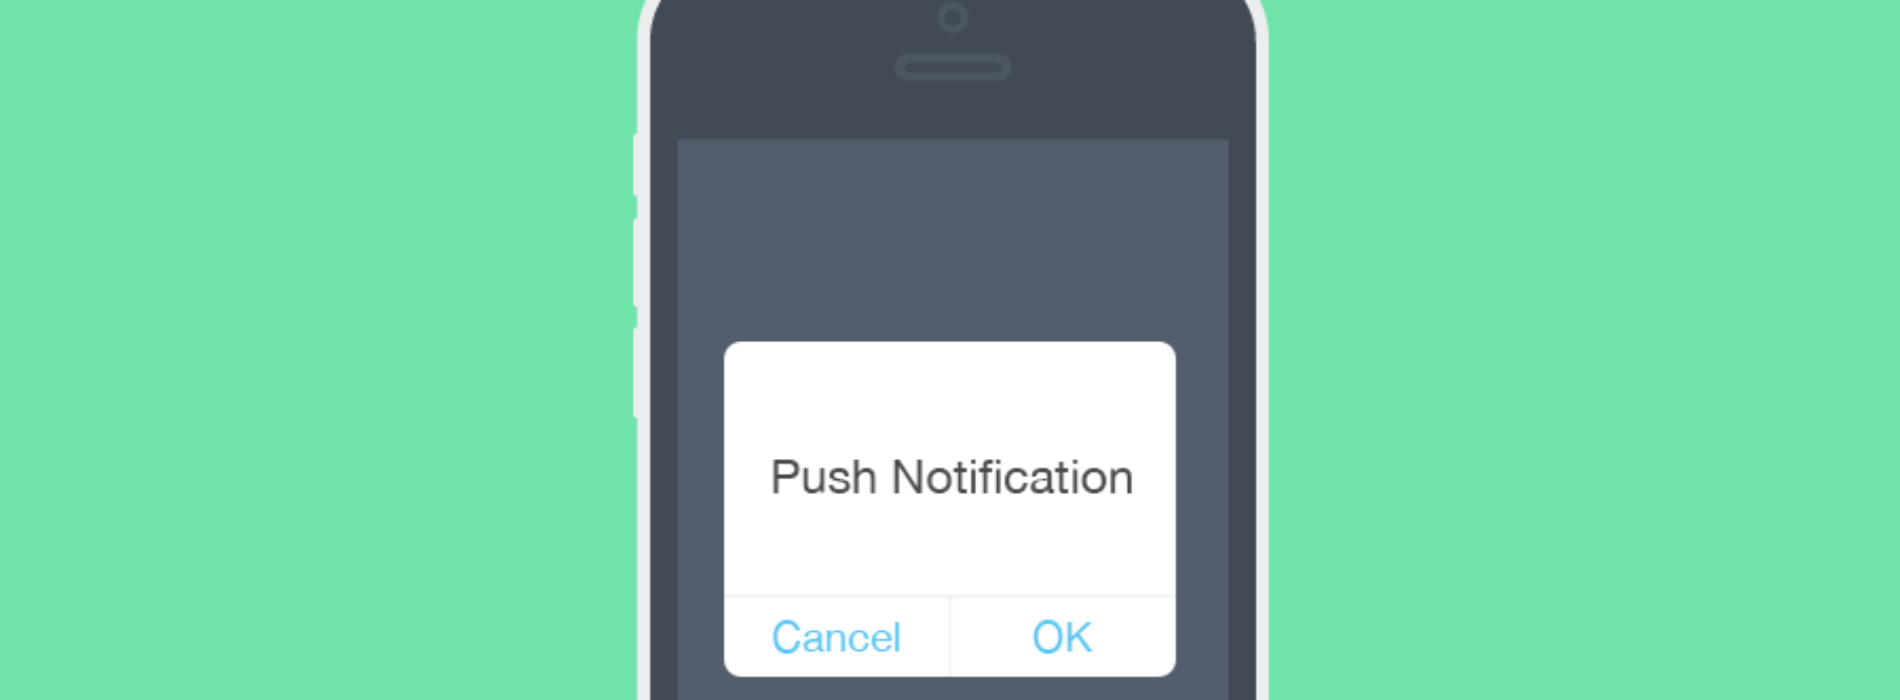 Implementando Push Notification no Xamarin Forms